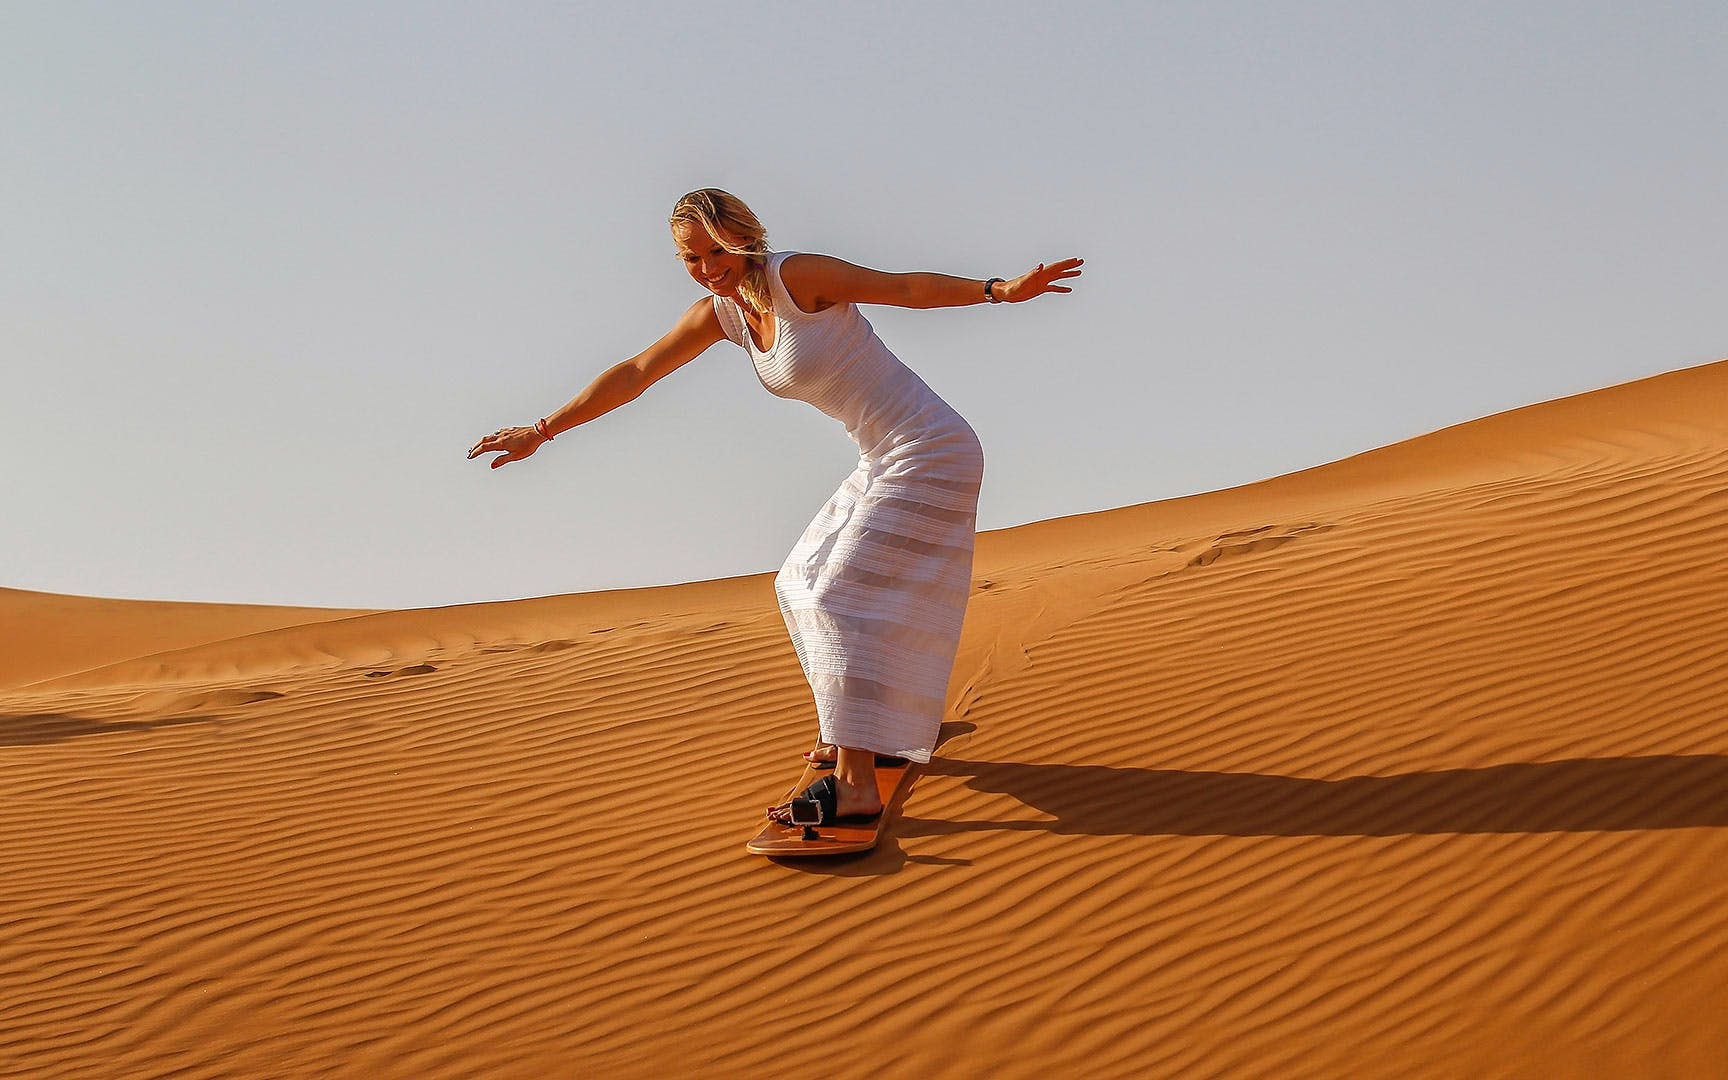 Desert Adventure Combo - Camel Ride, Quad Biking & Sand Boarding